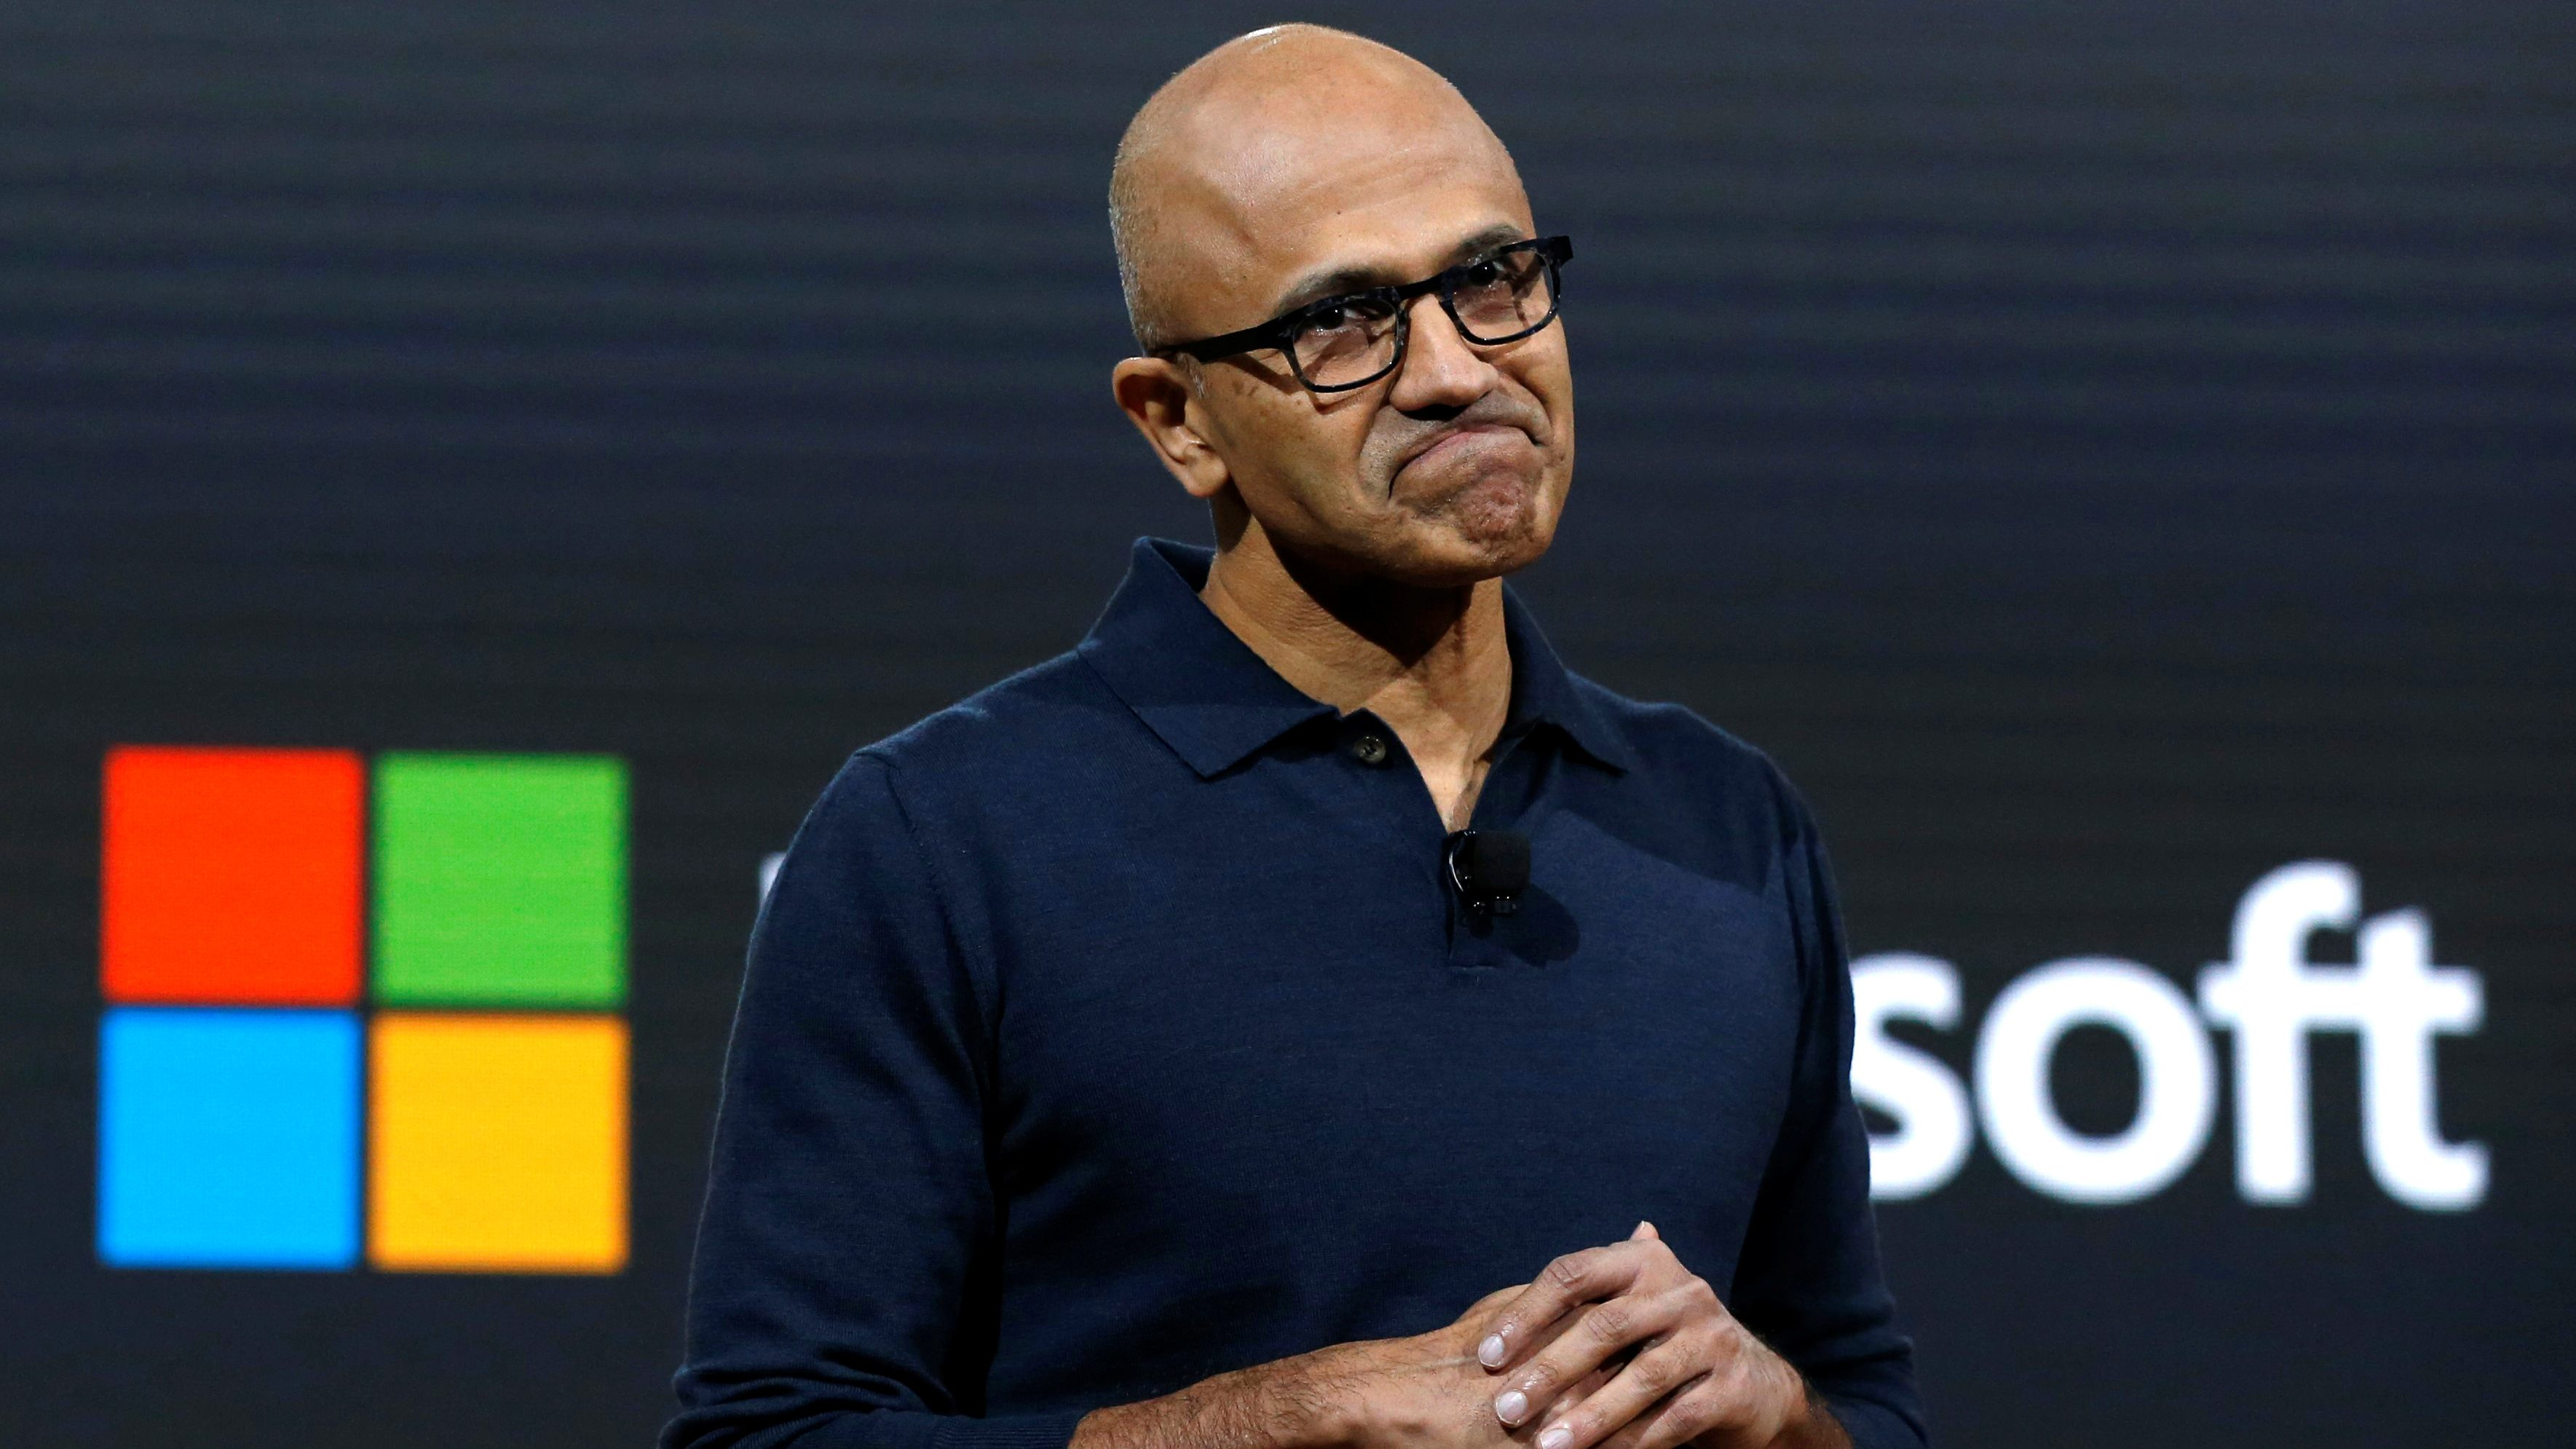 Microsoft CEO Satya Narayana Nadella speaks at Microsoft's live event in New York